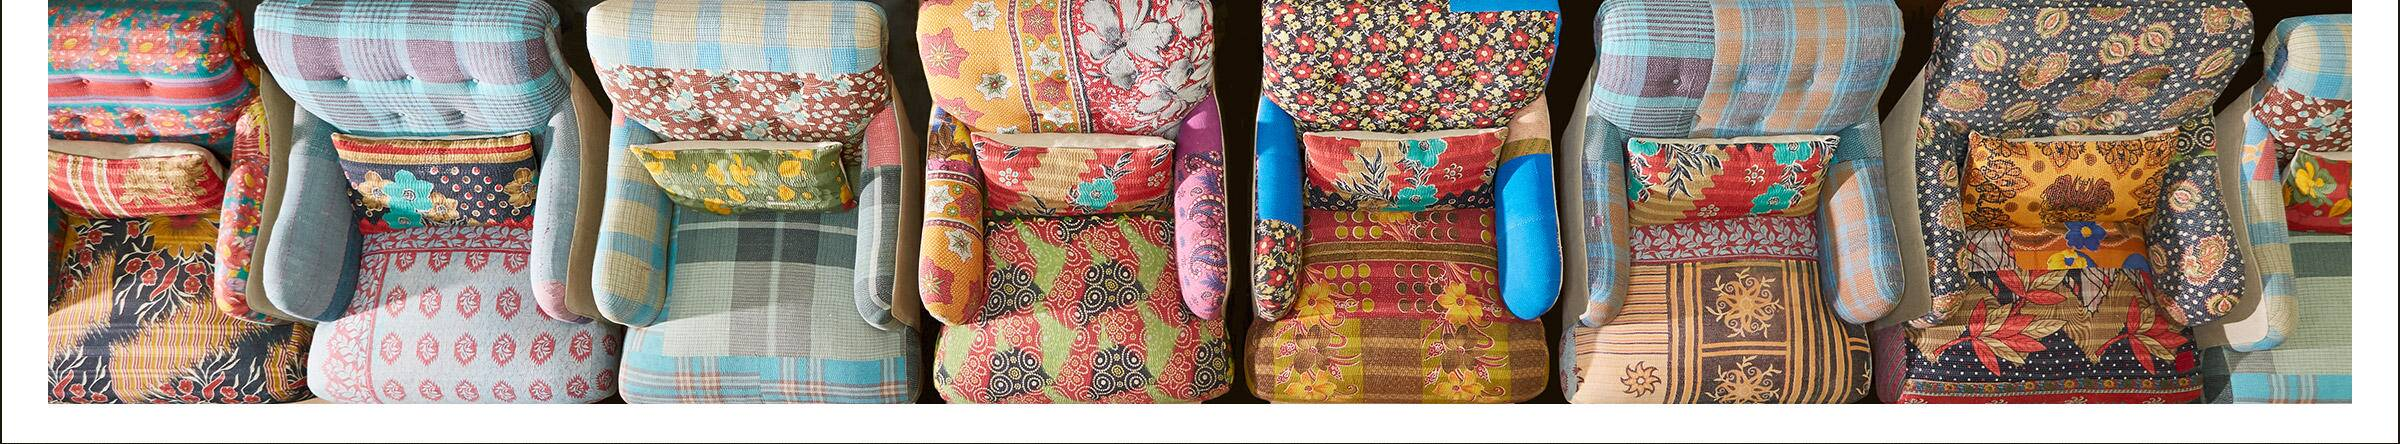 One-of-a-Kind Sari Chair